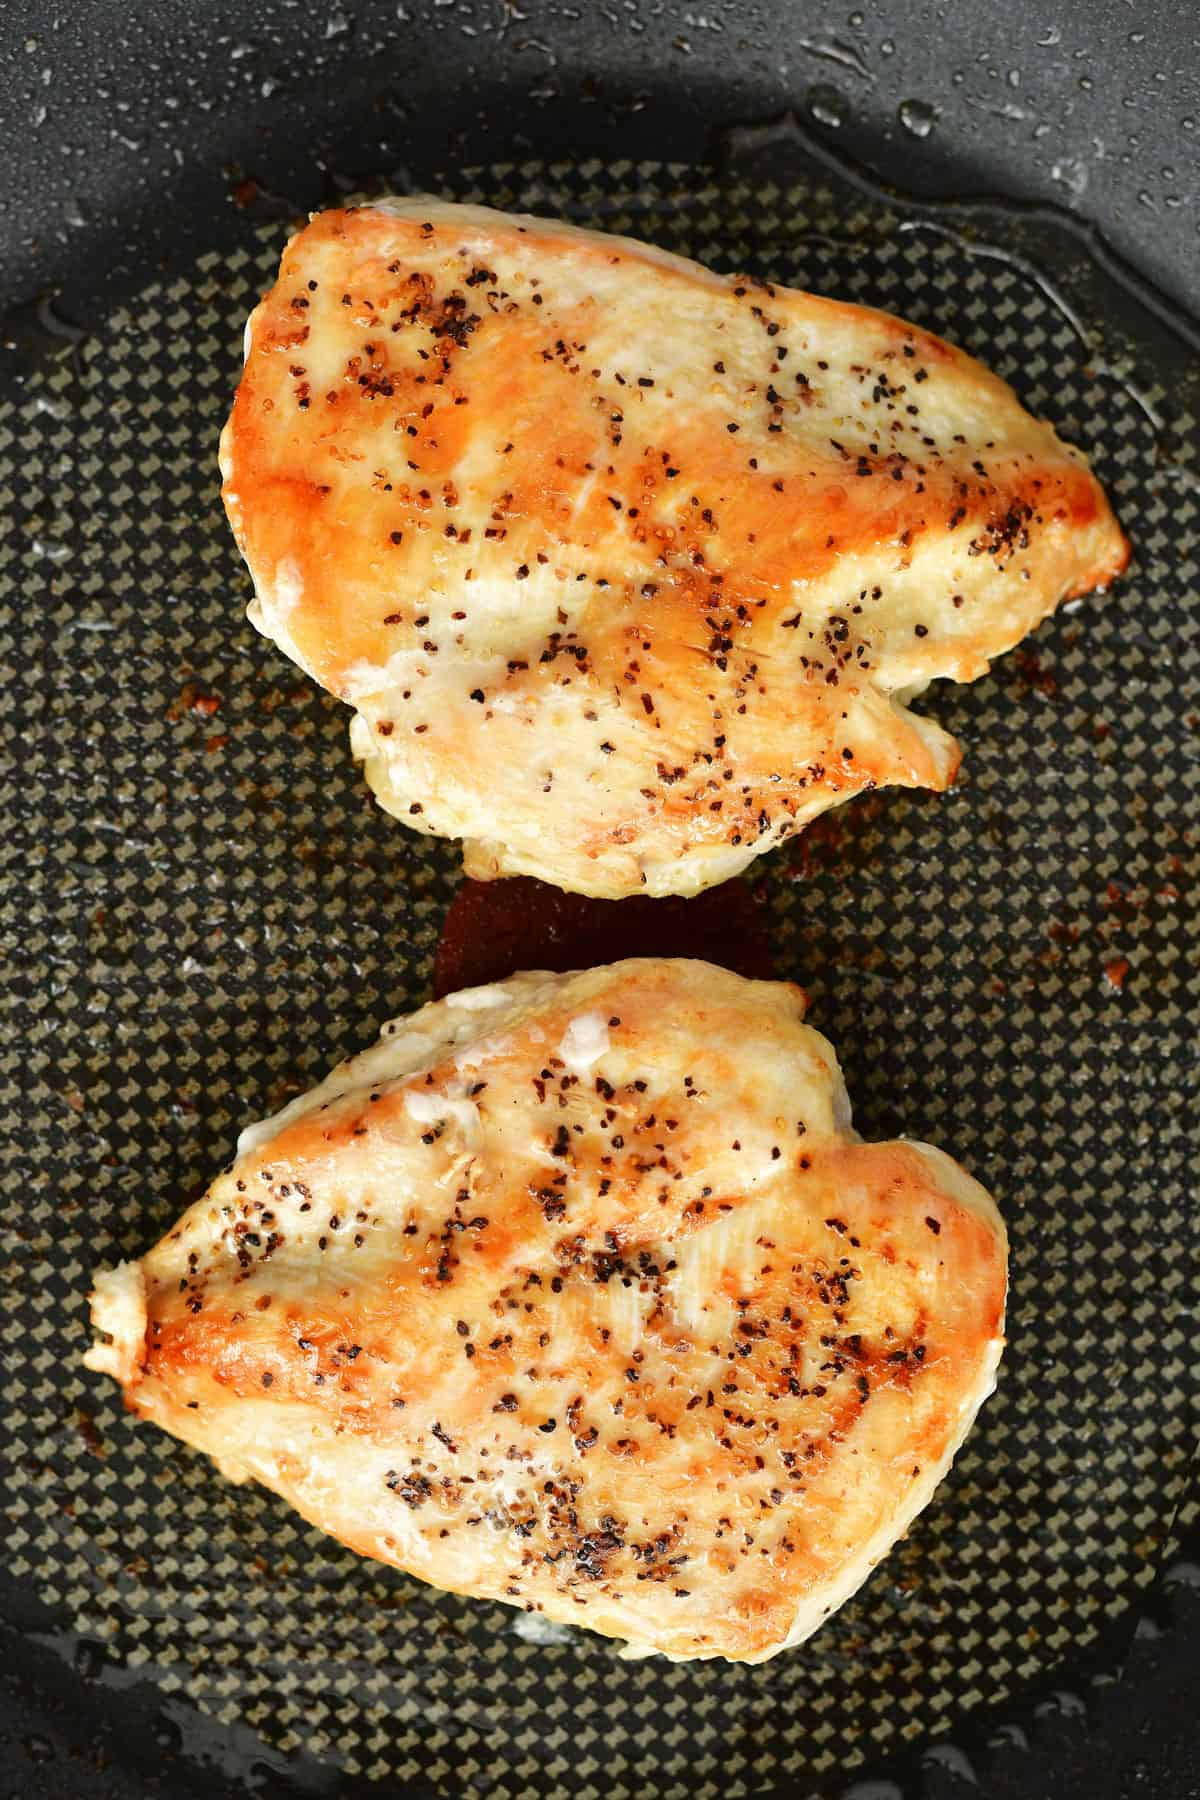 two cooked chicken breasts in a pan